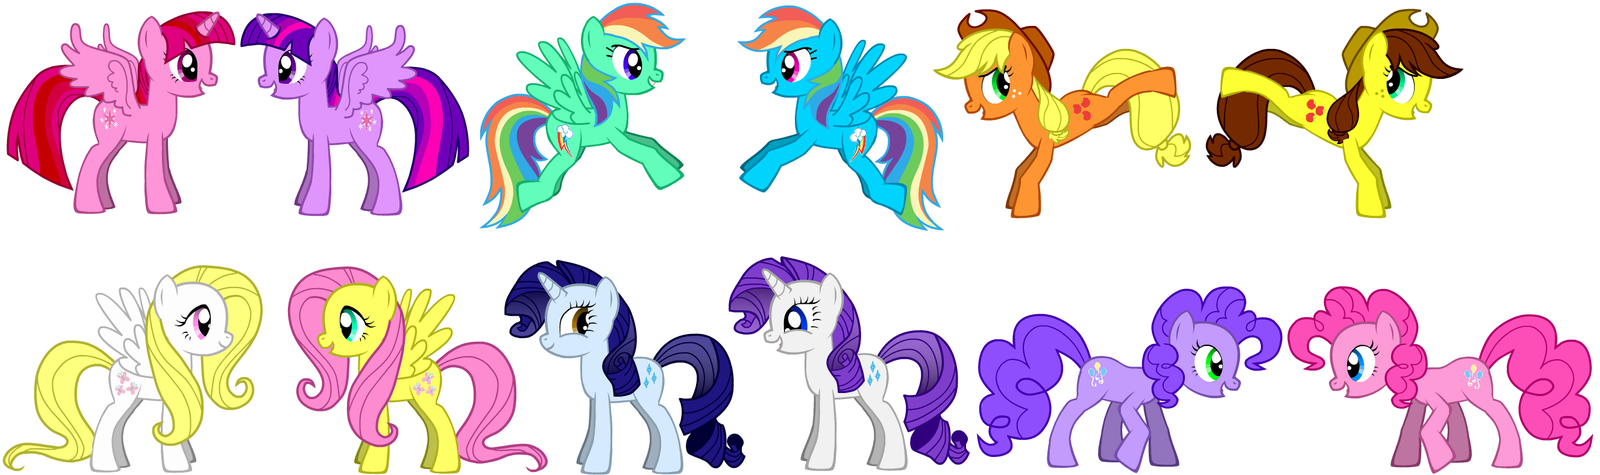 original mane 6 meets the parallel mane 6 by